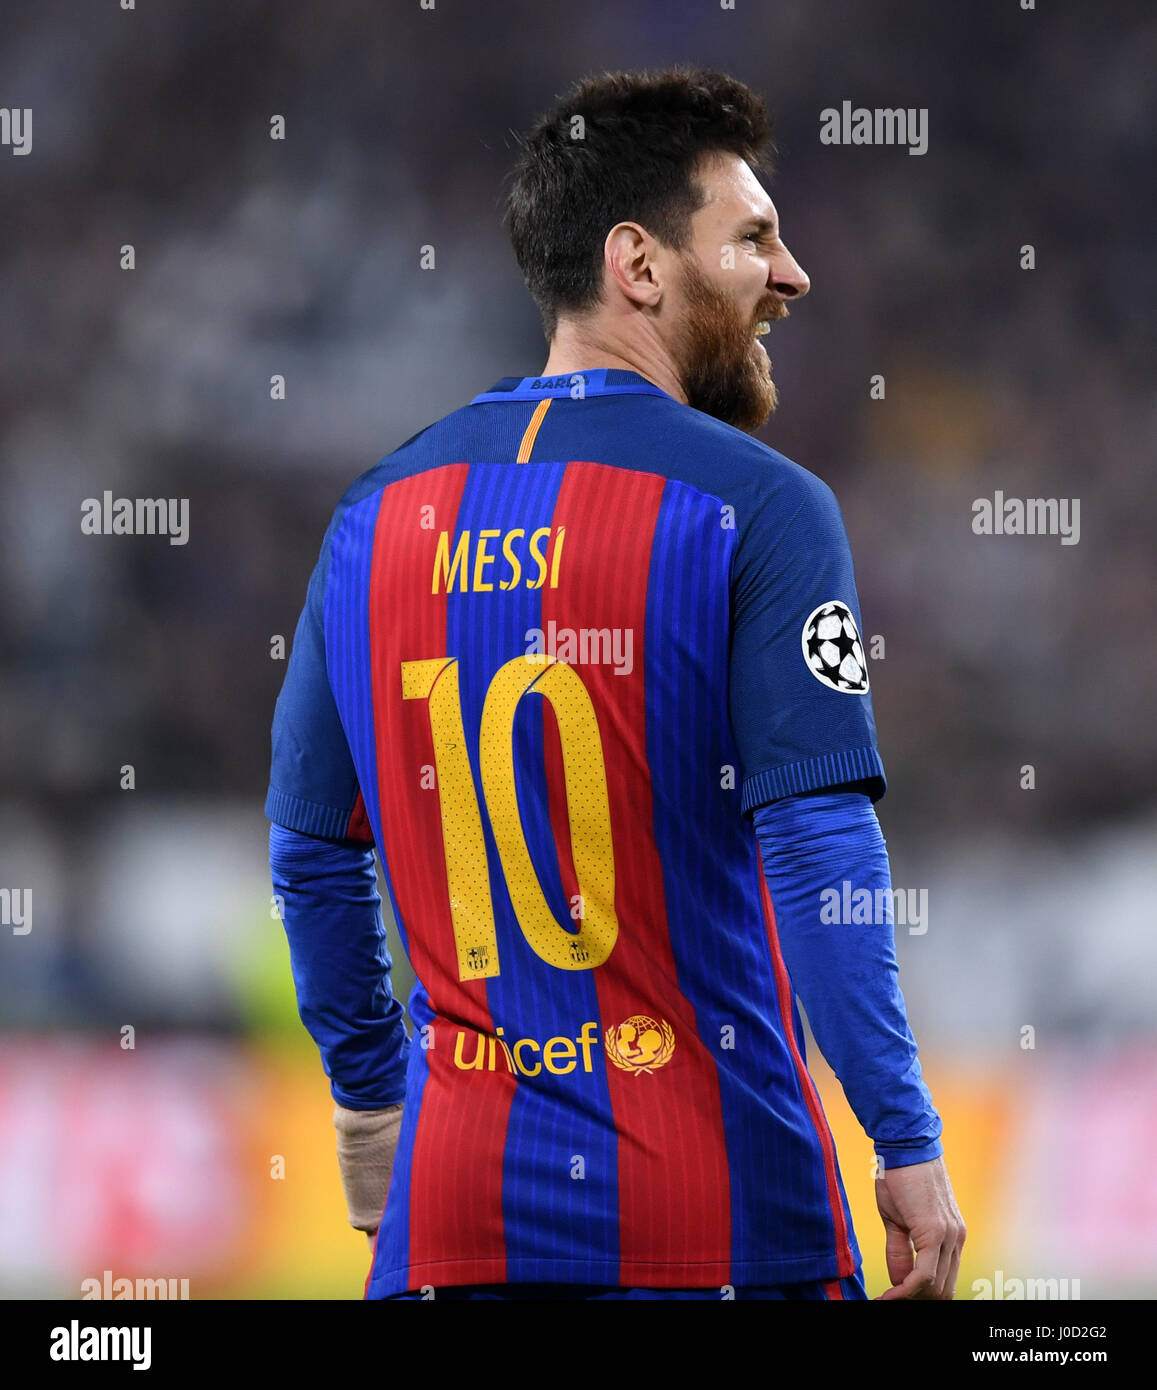 11th Apr 2017 Barcelonas Lionel Messi Reacts During The UEFA Champions League Quarterfinal First Leg Match Between Juventus And Barcelona In Turin